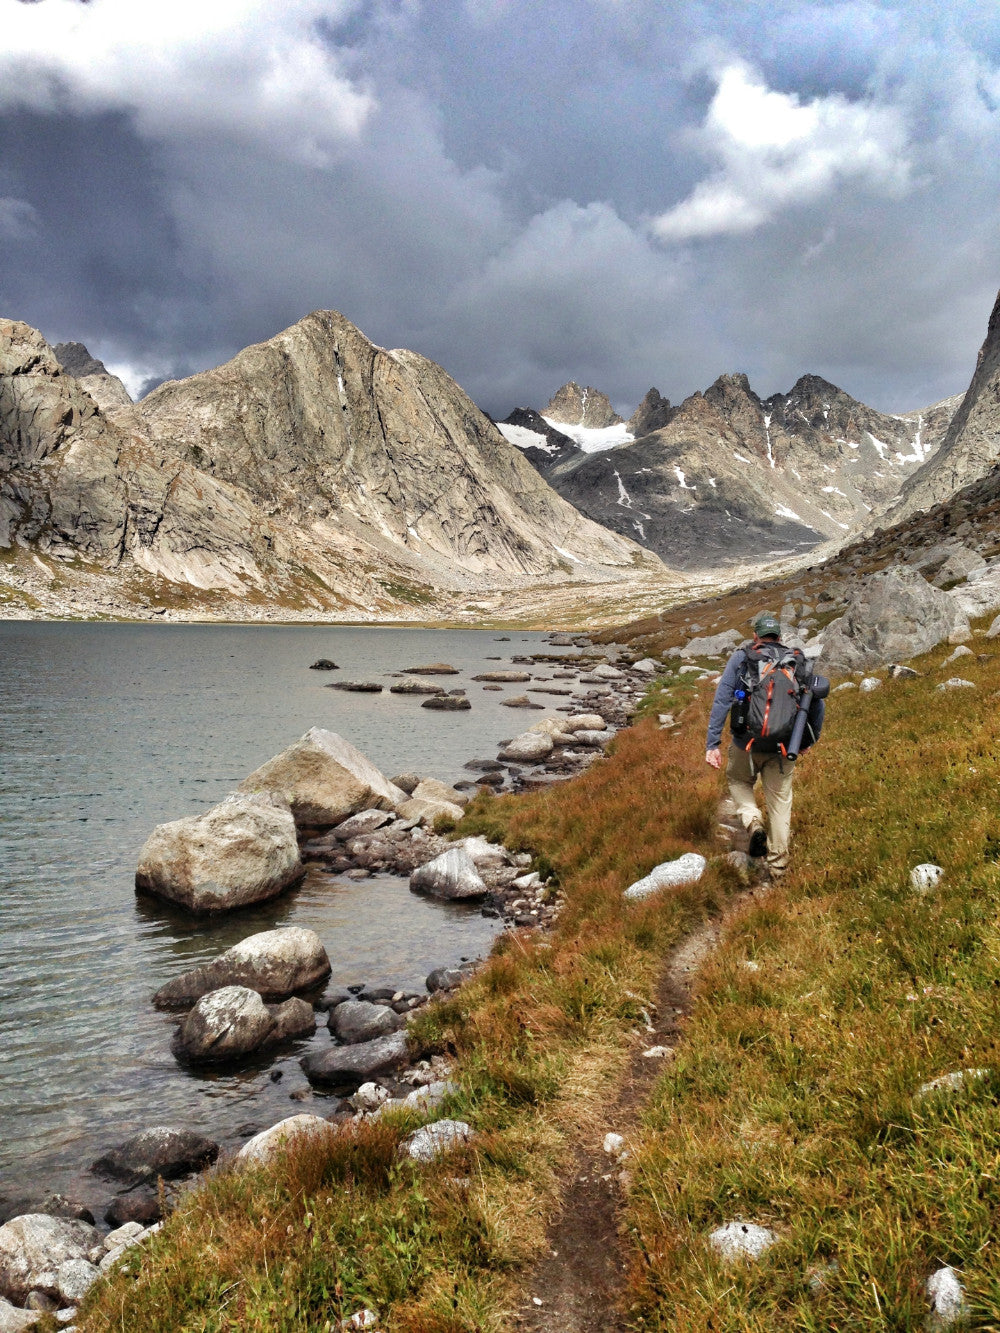 Wyoming's Epic Wind River Range • Sanborn Scout Field Log